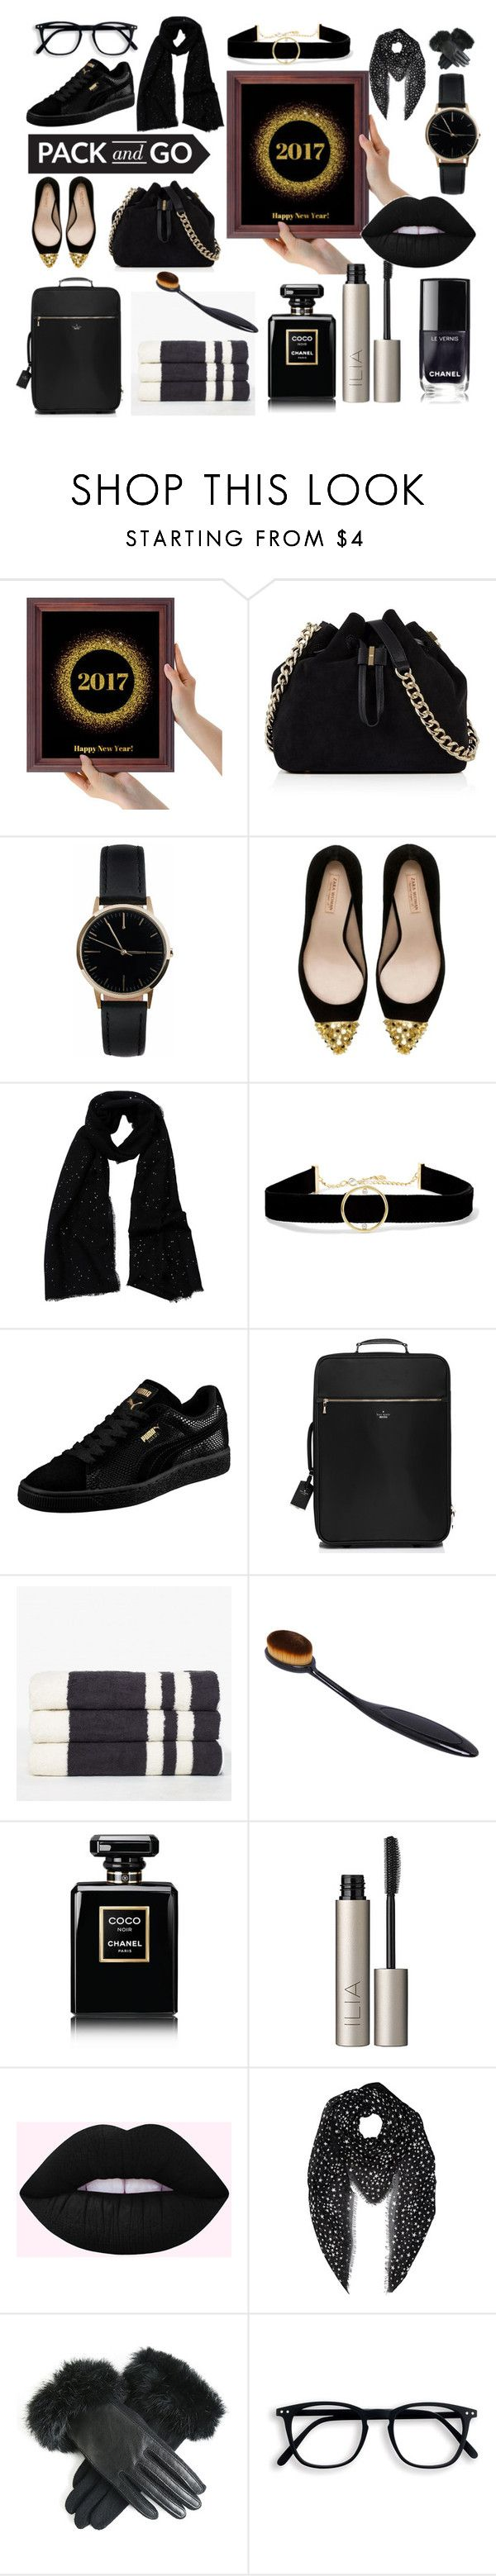 Pack and go by oldcastlechrista on Polyvore featuring Zara, Puma, Kate Spade, Karen Millen, Anissa Kermiche, Freedom To Exist, Yves Saint Laurent, Tilo, Ilia and Chanel